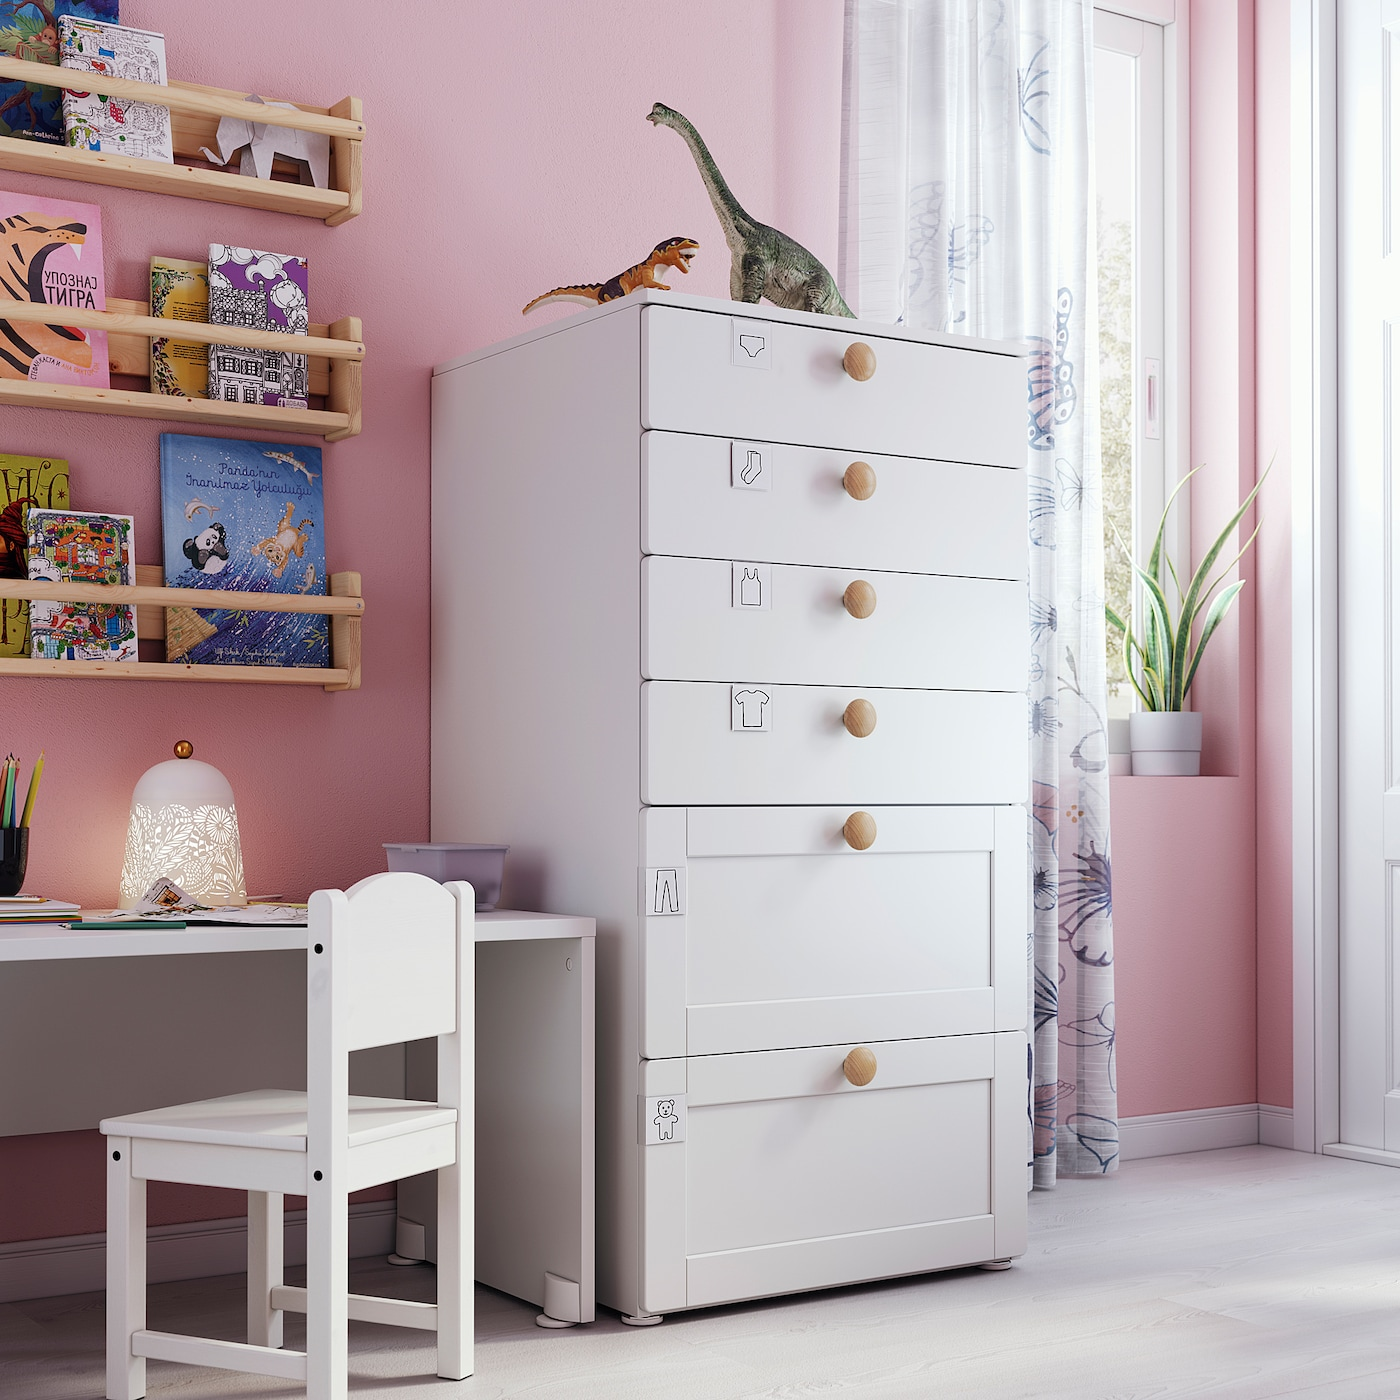 SMÅSTAD / PLATSA Chest of 6 drawers, white with frame, 60x57x123 cm